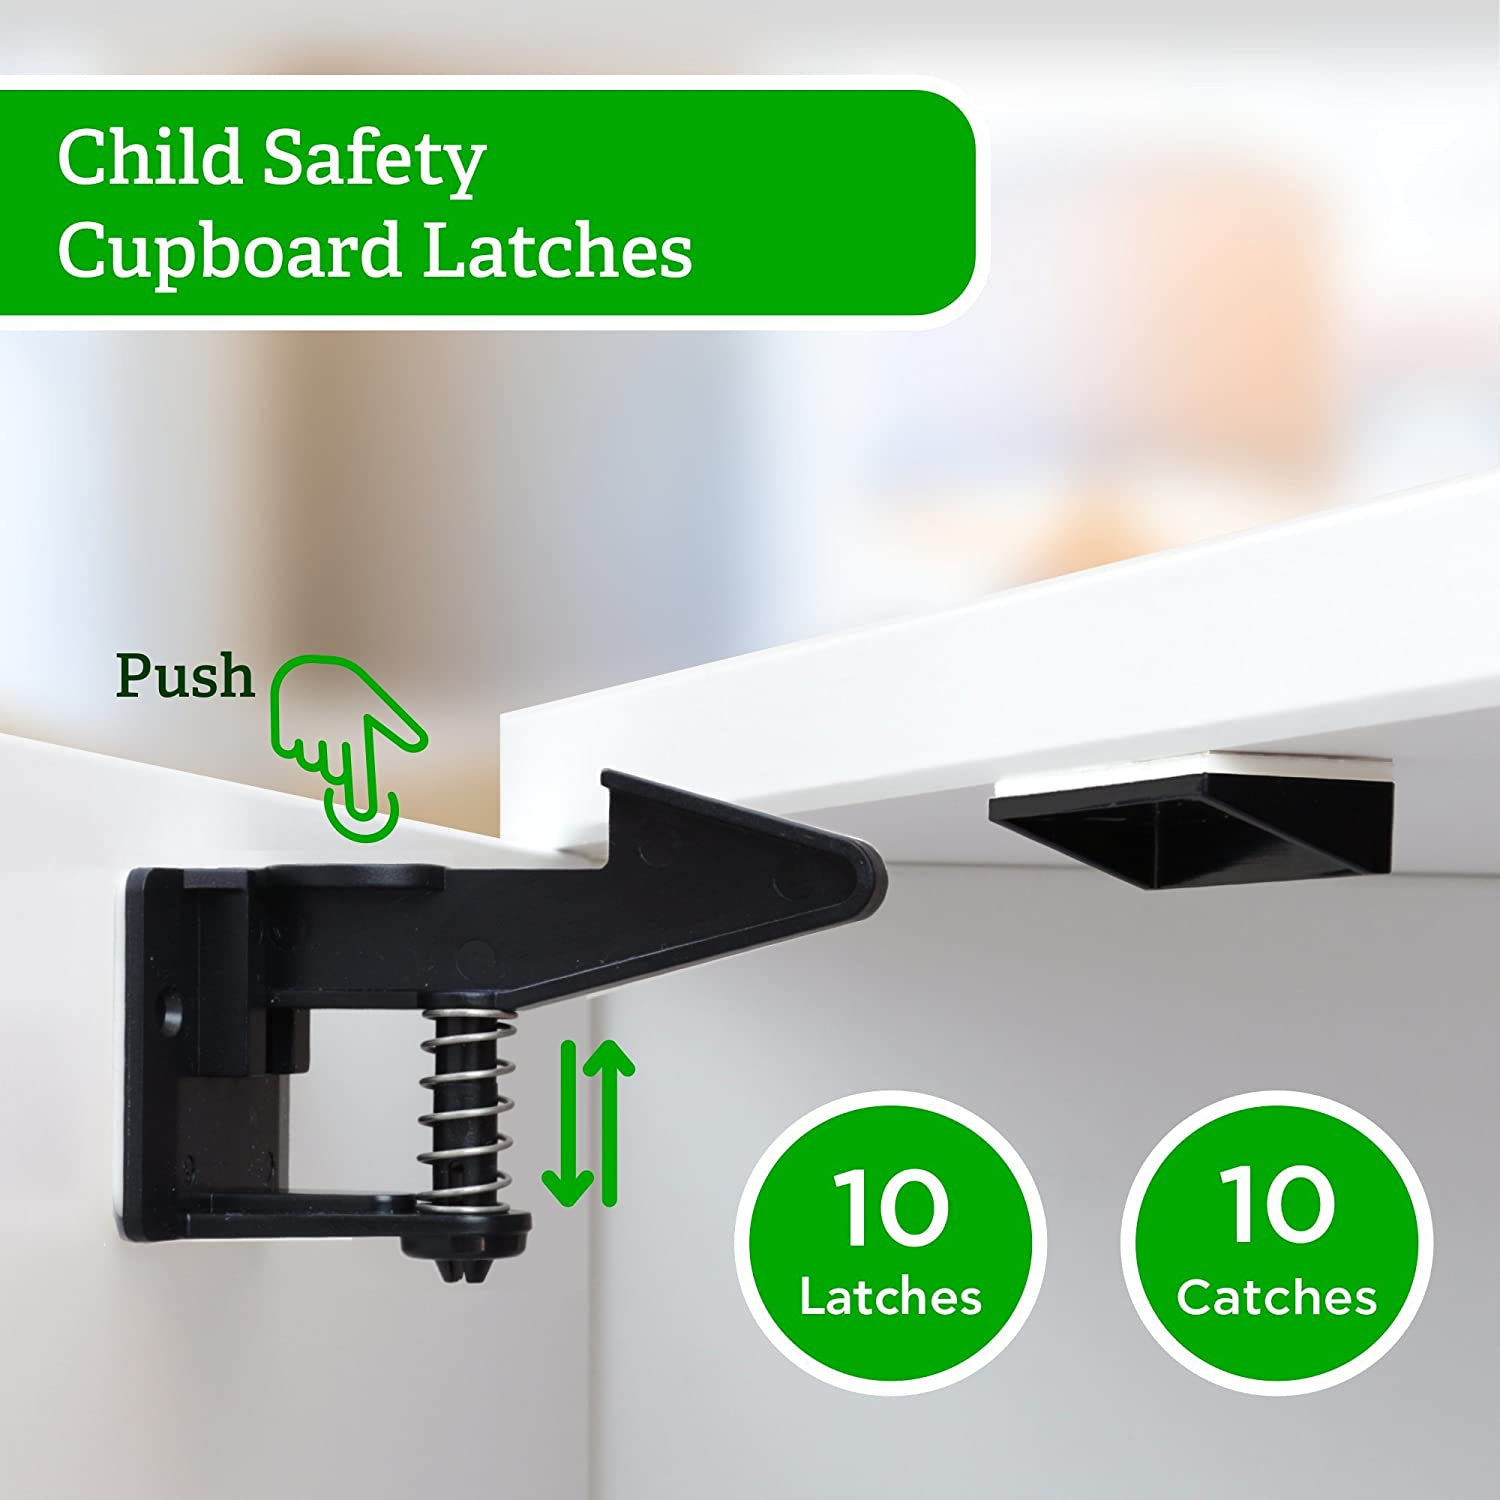 Baby Guard - Child Safety Cupboard Latches, 10 Packs, Easy to Install, No Tools or Drilling Needed, Invisible Design with Latches and BONUS Installation Videos - Black